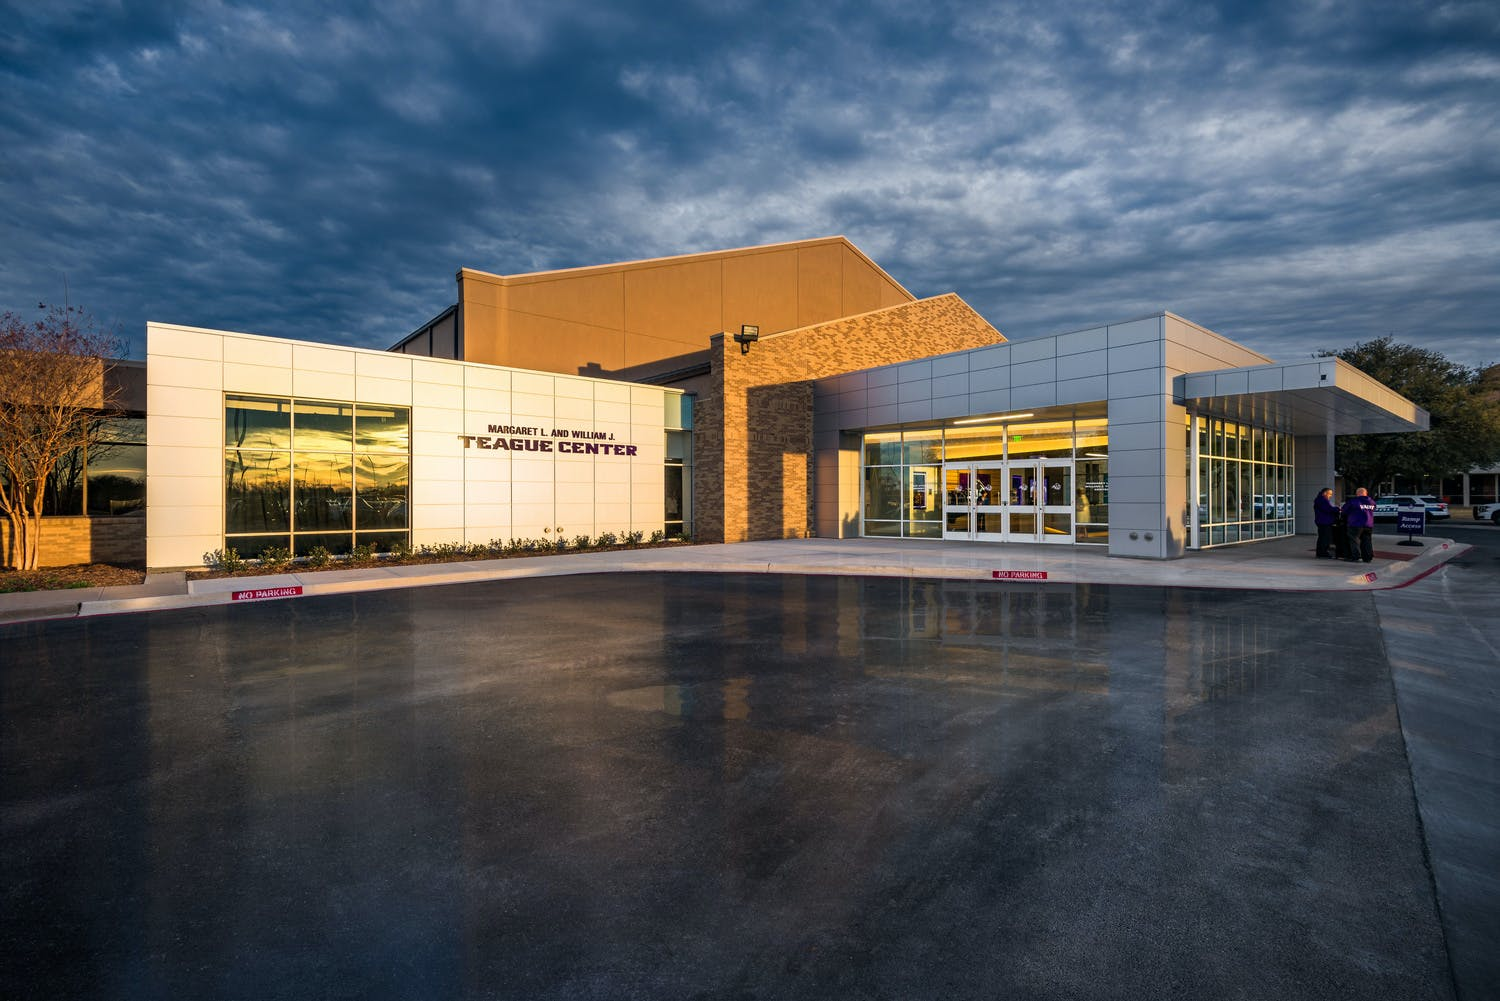 Teague Special Events Center Gallery Images